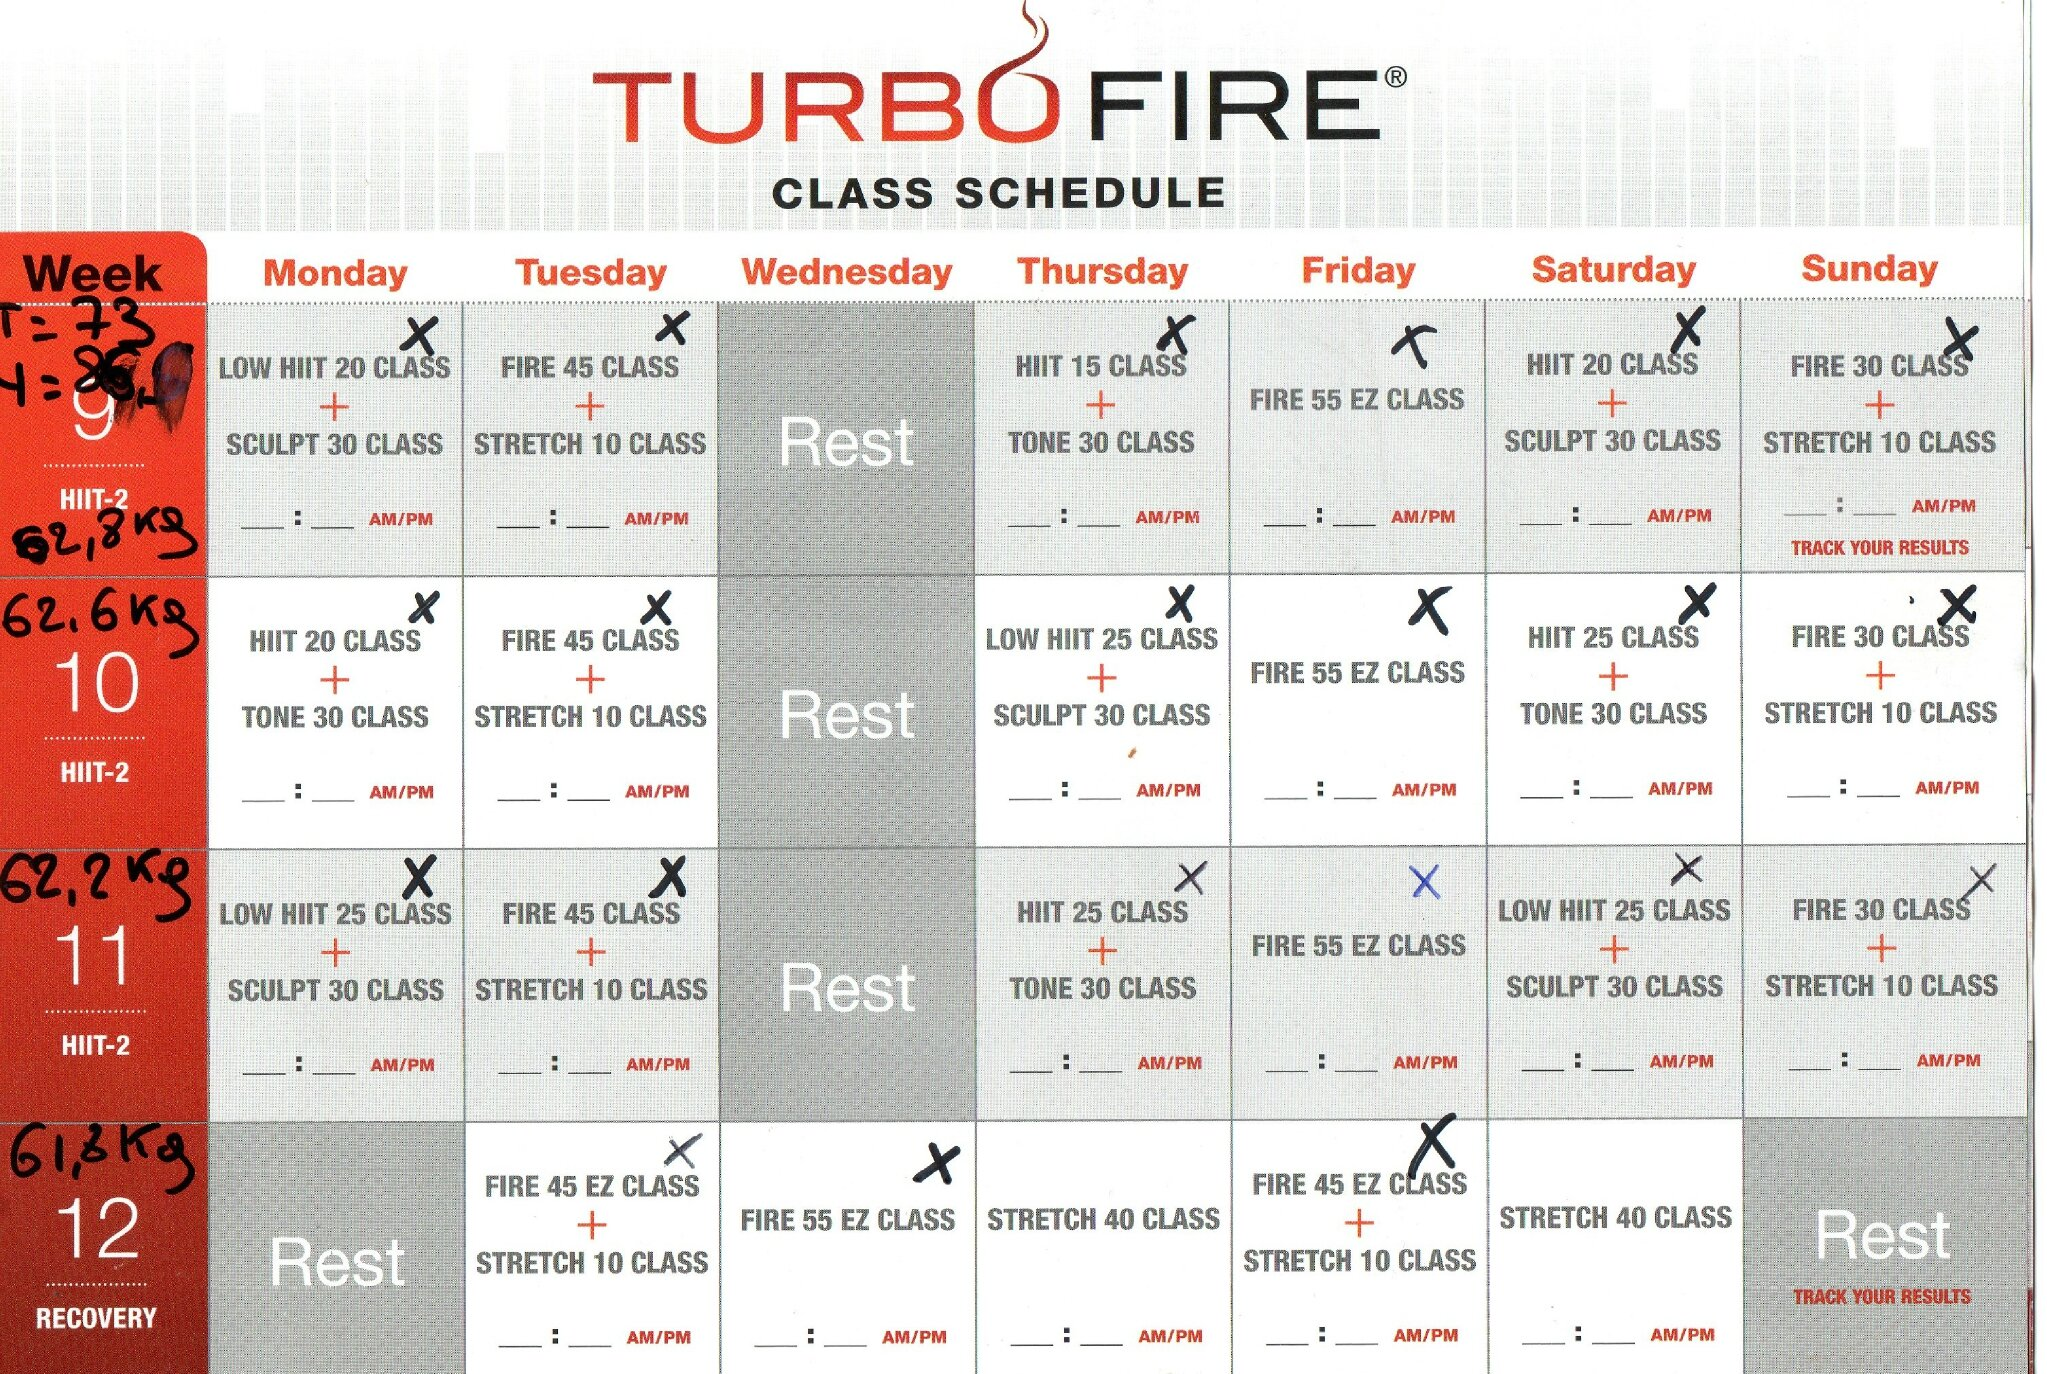 Turbo fire Workout Schedule - Mincir et se sculpter avec Beachbody